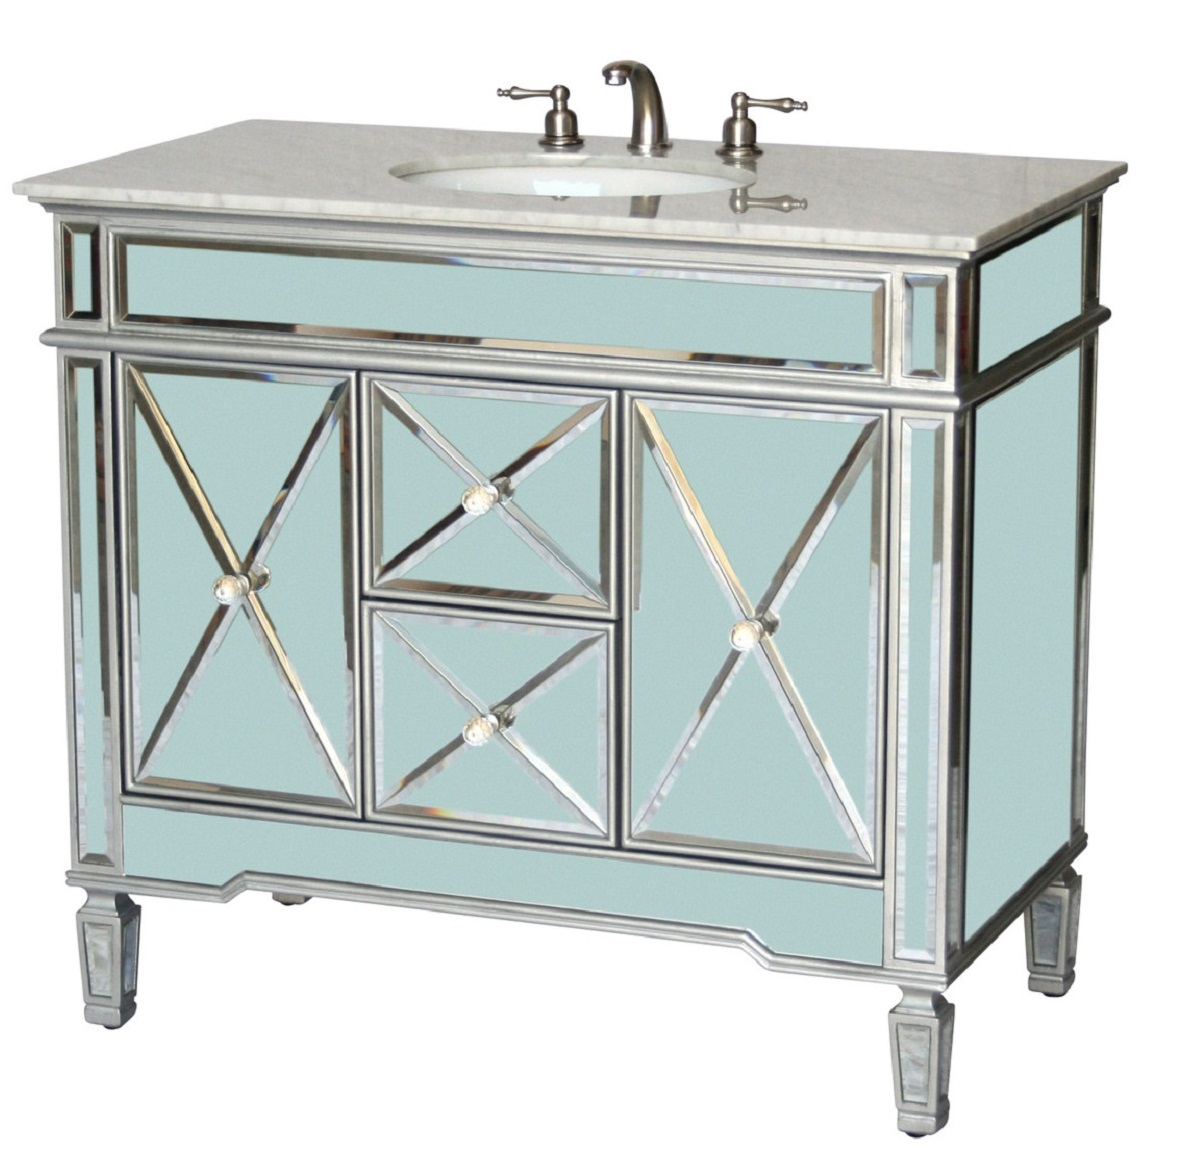 40 Inch Bathroom Vanity Art Deco Mirrored Style Silver Trims Carrara Top 40 Wx22 Dx36 H S5092